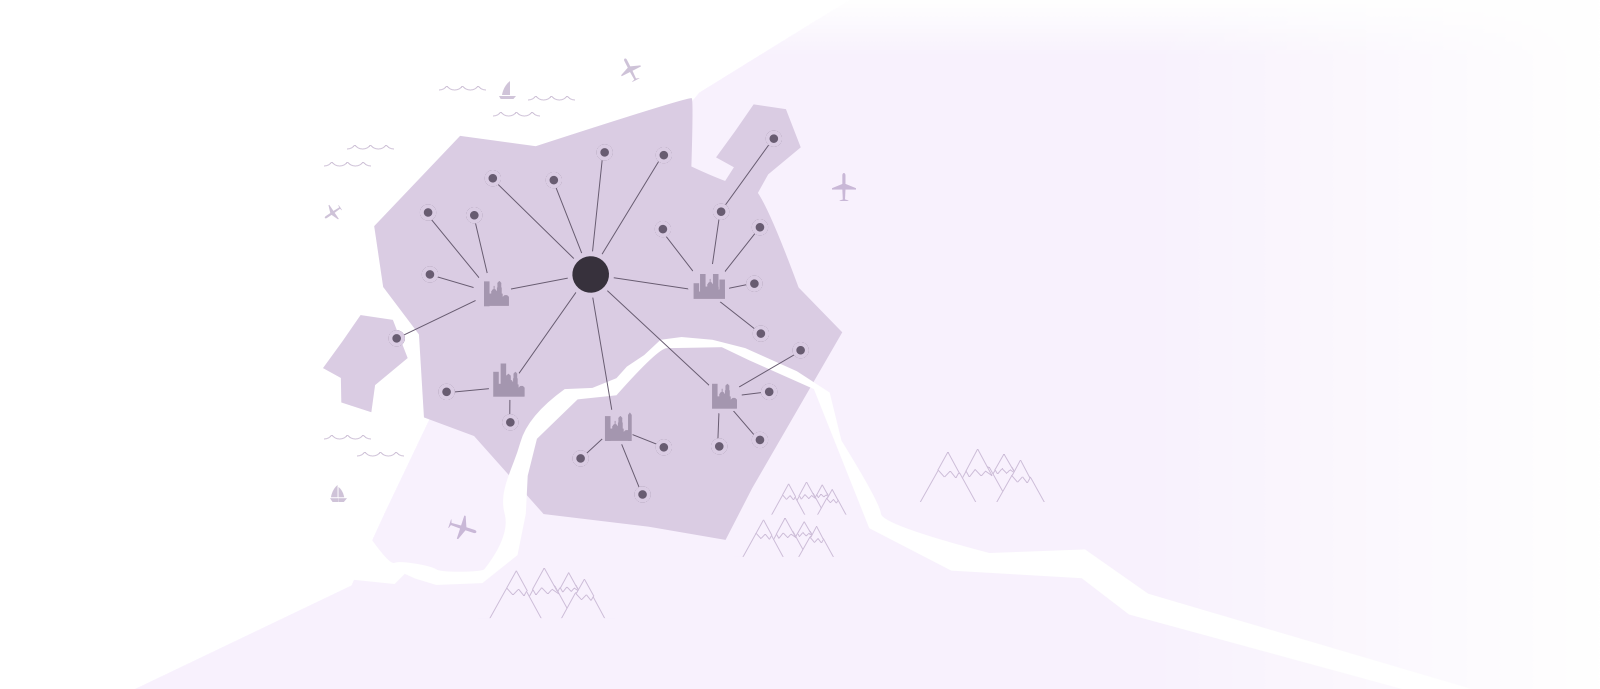 territory with connections